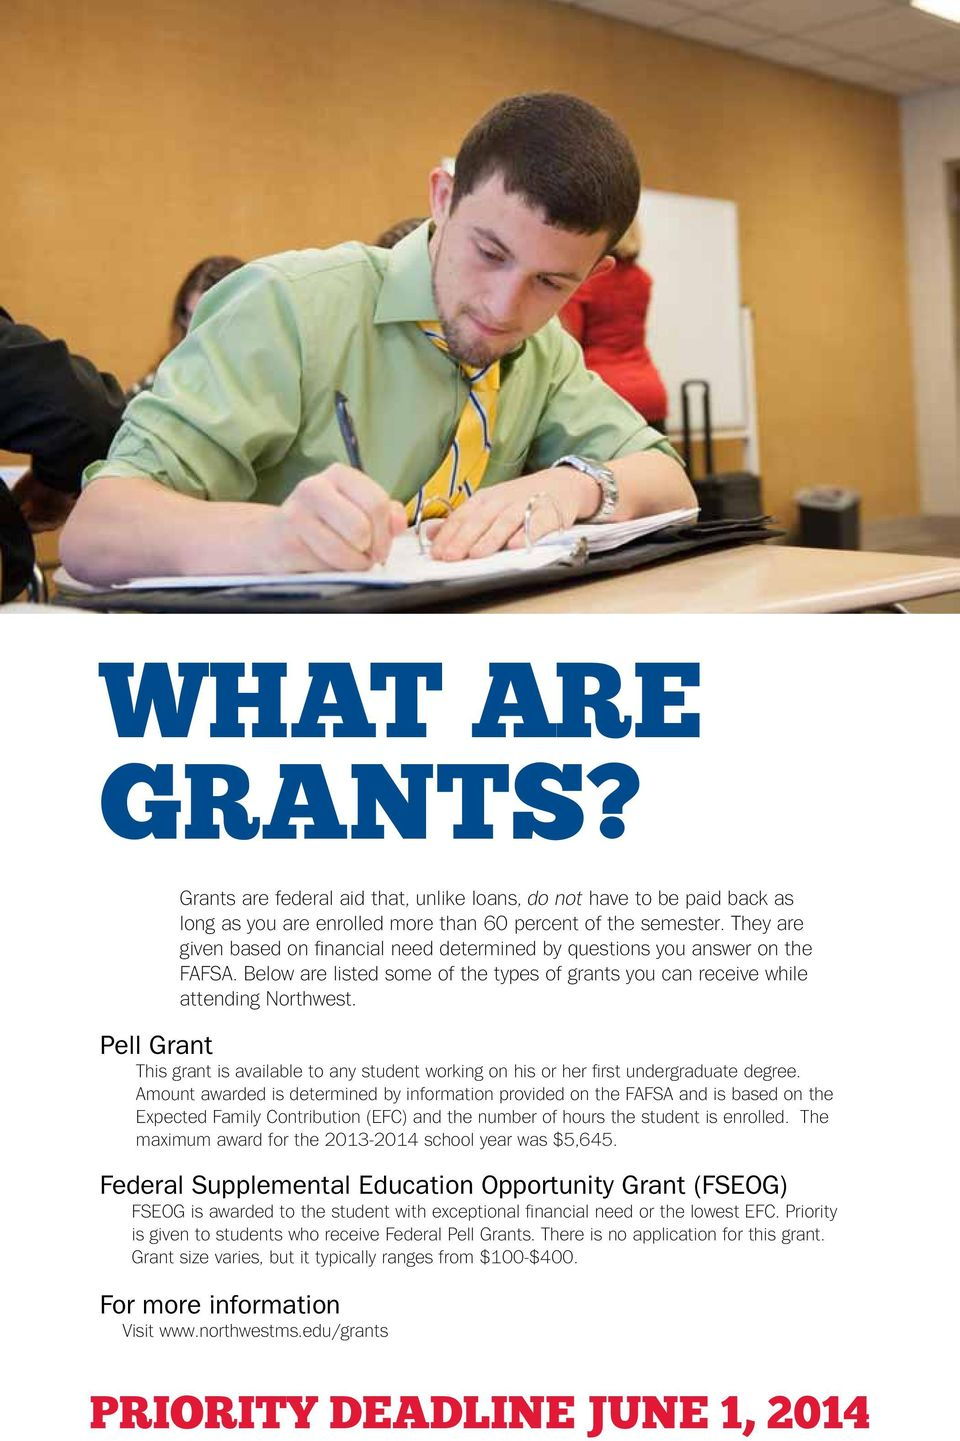 This grant is available to any student working on his or her first undergraduate degree.